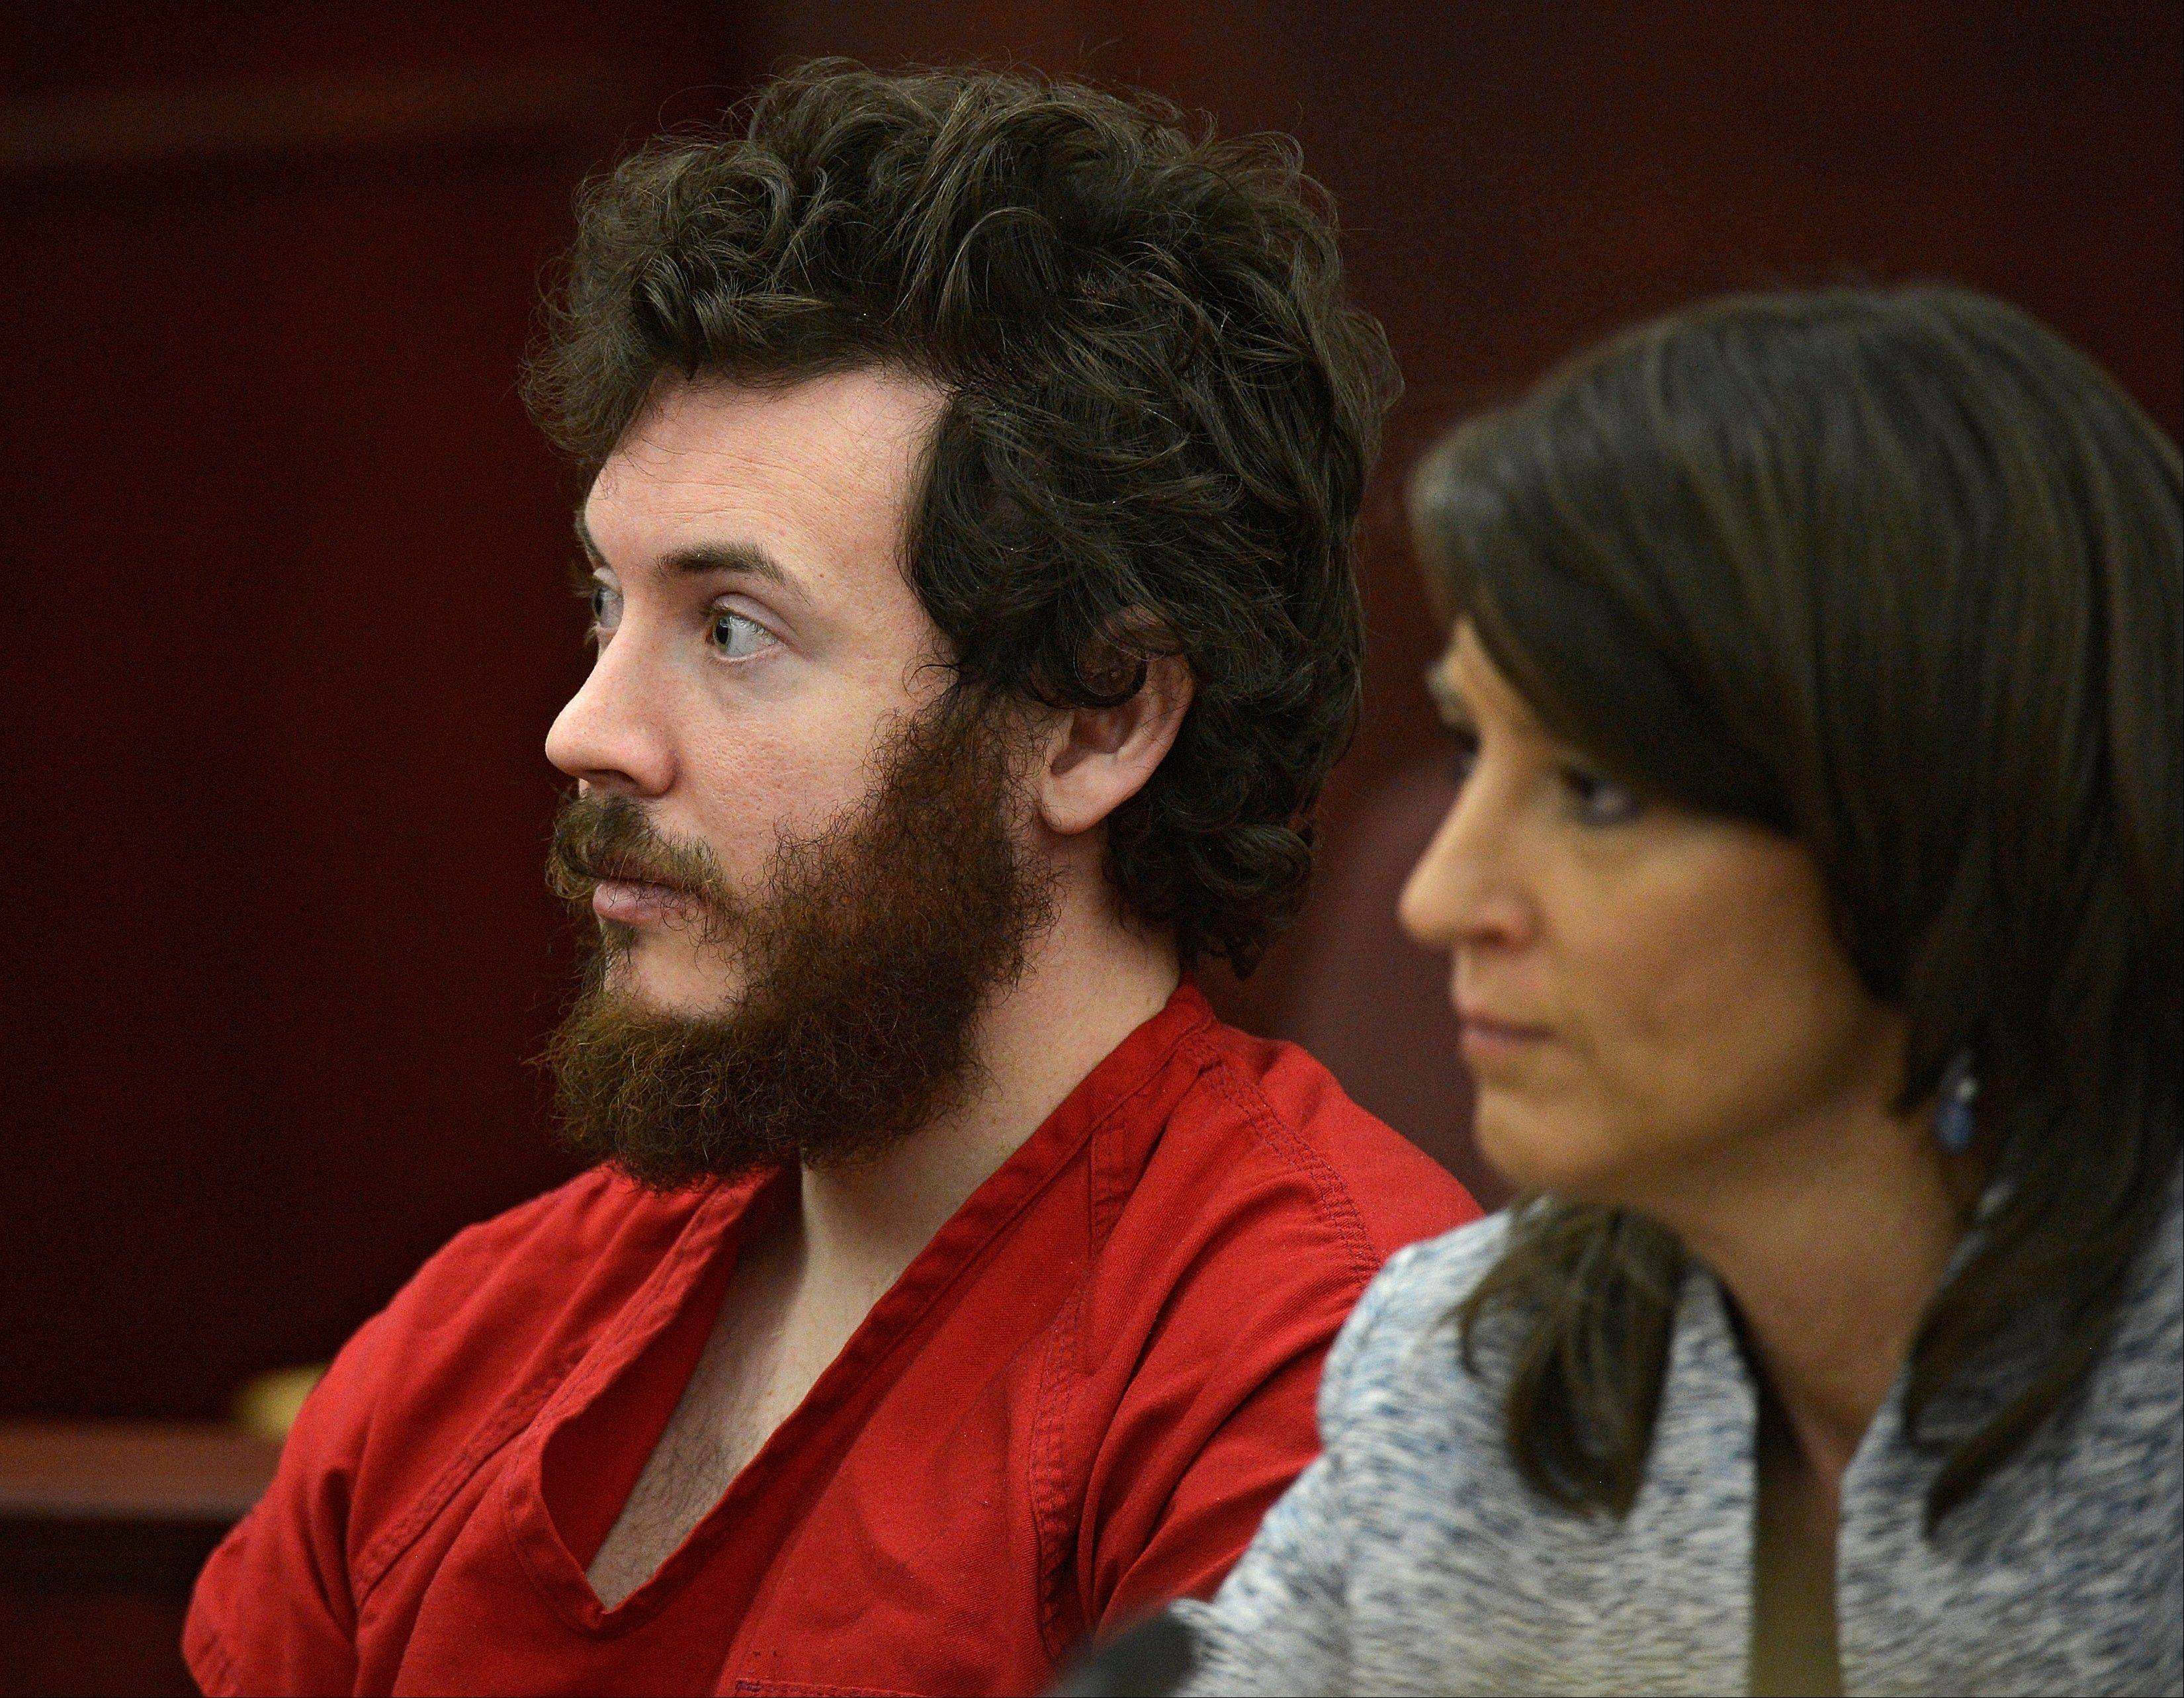 James Holmes, left, and defense attorney Tamara Brady appear in district court in Centennial, Colo. for his arraignment. Court documents are raising new questions for the university that Colorado theater shooting suspect James Holmes attended before the July 20 theater shooting that left 12 people dead and 70 injured.